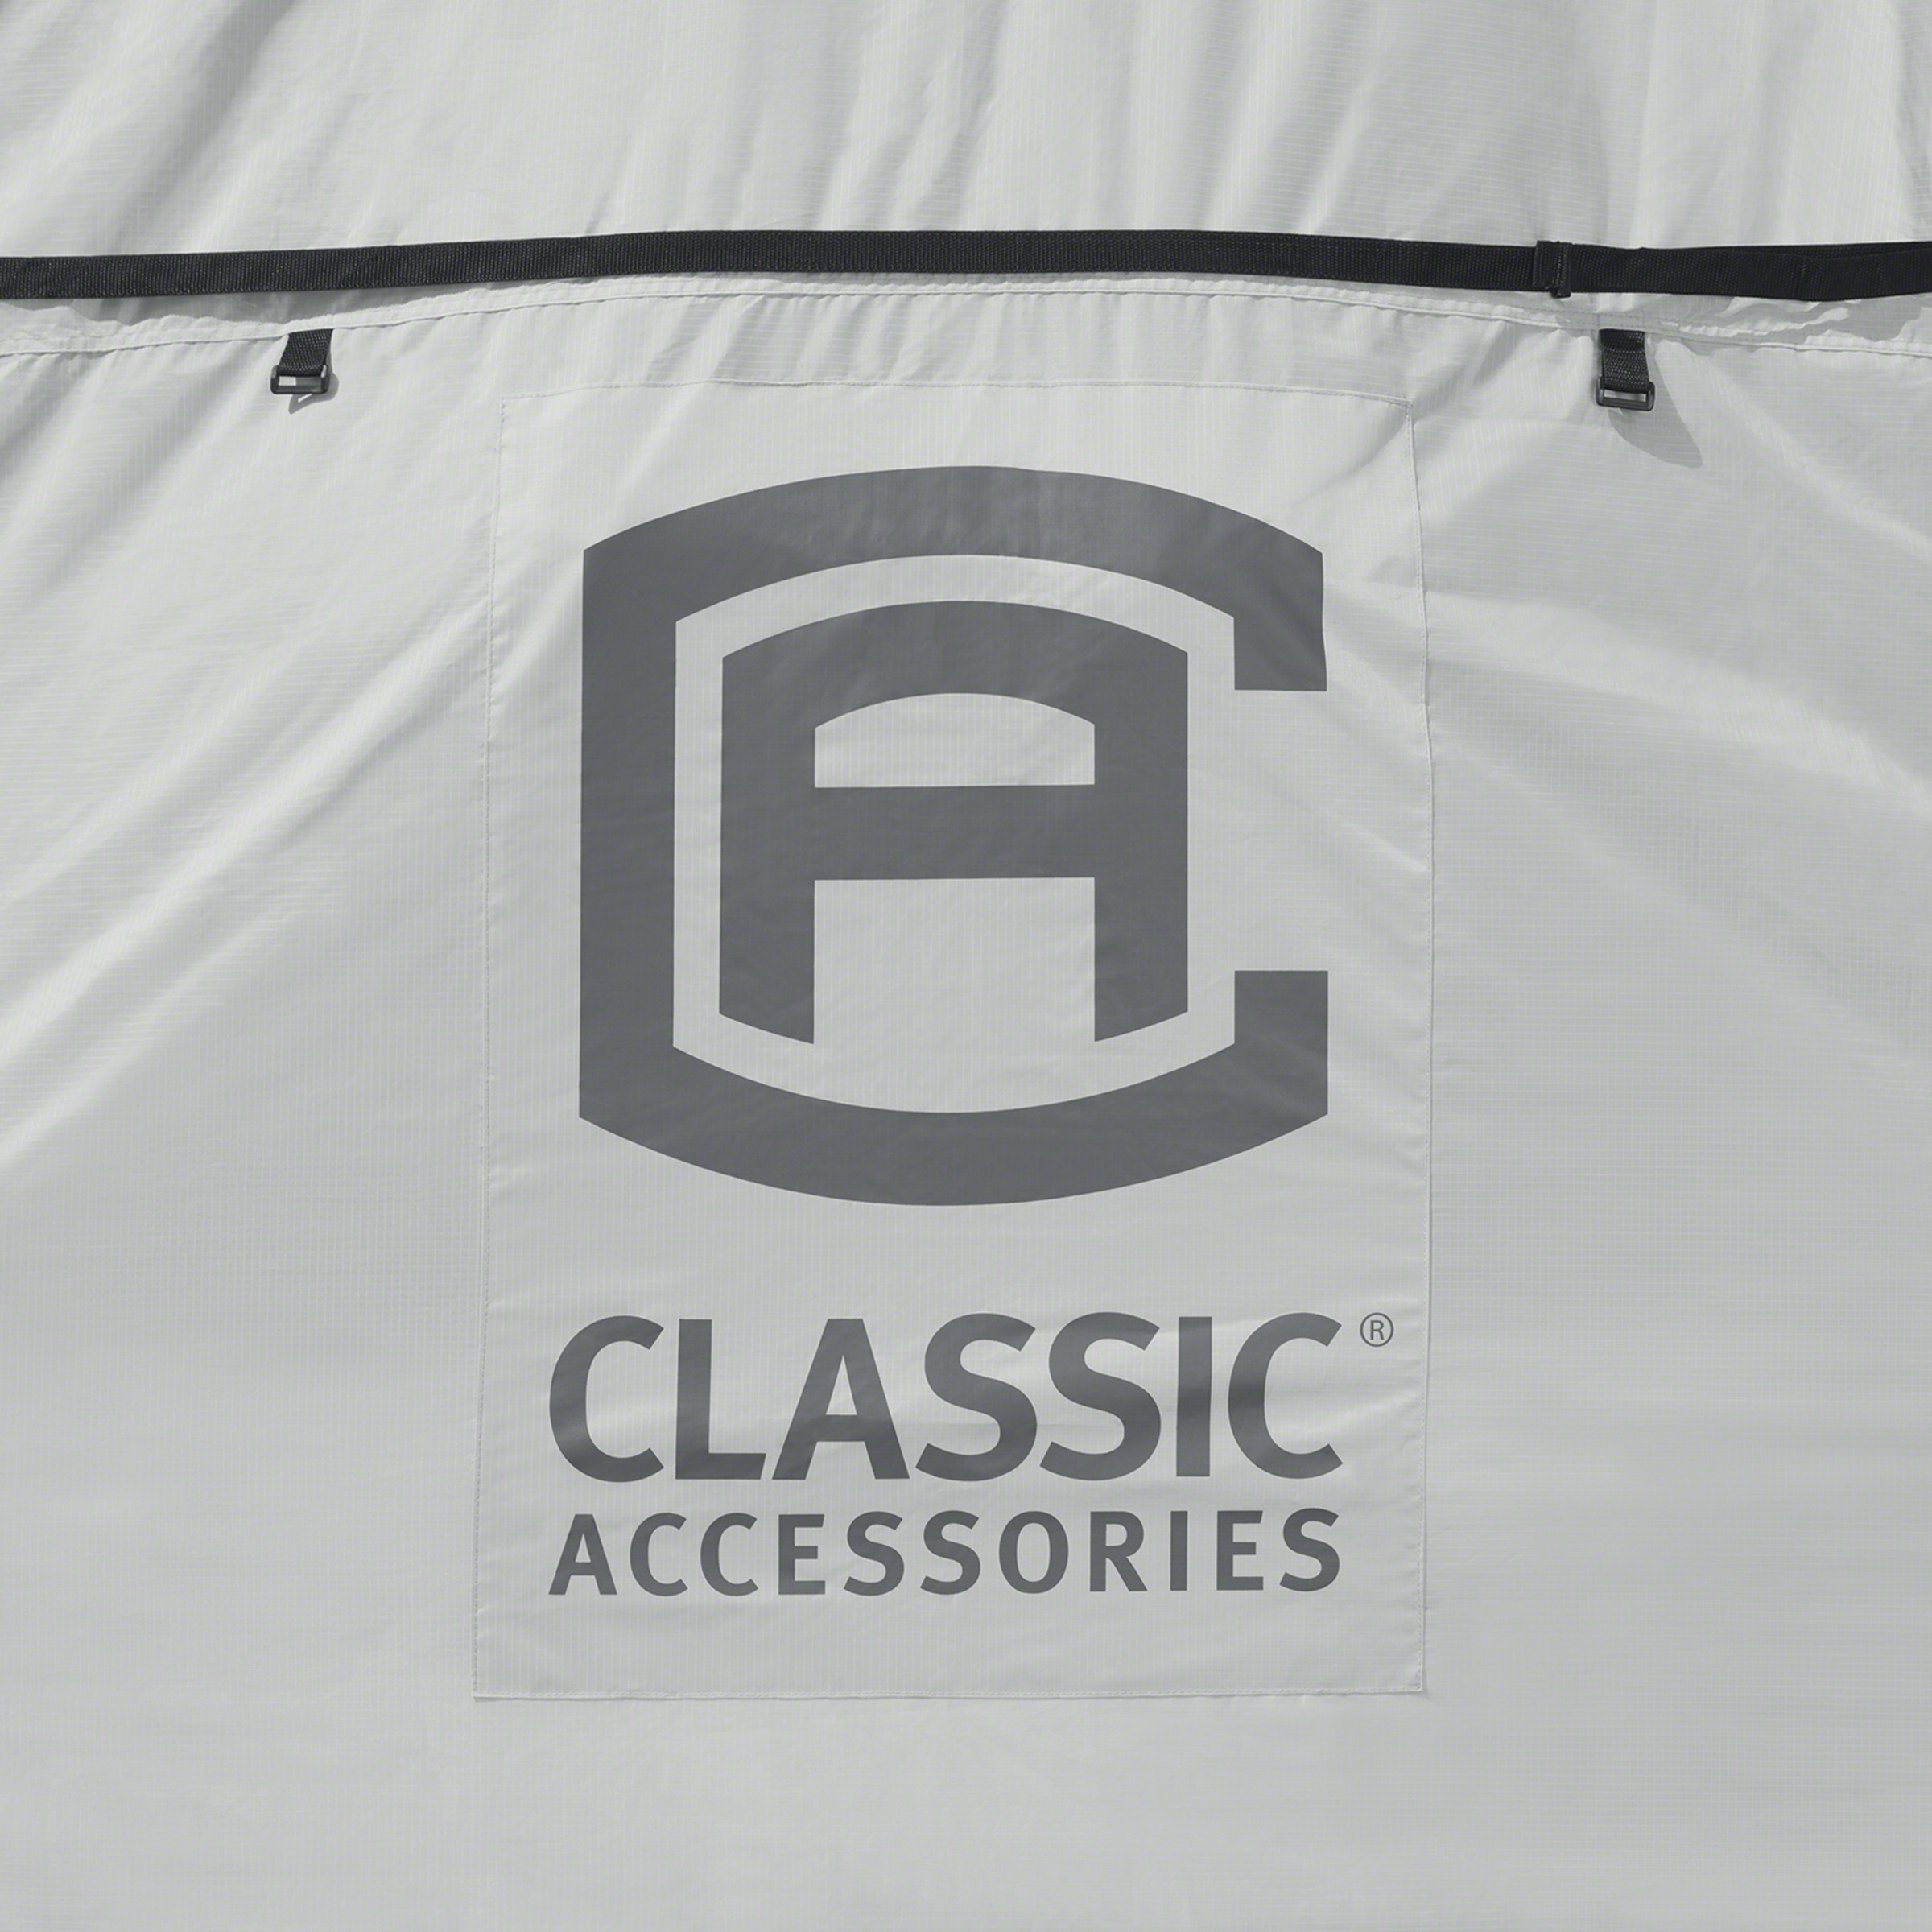 Classic Accessories OverDrive SkyShield Deluxe Tyvek 5th Wheel Trailer Cover, Fits 29' - 33' Trailers - Water Repellent Tyvek RV Cover (80-364-101701-EX) - image 1 of 2